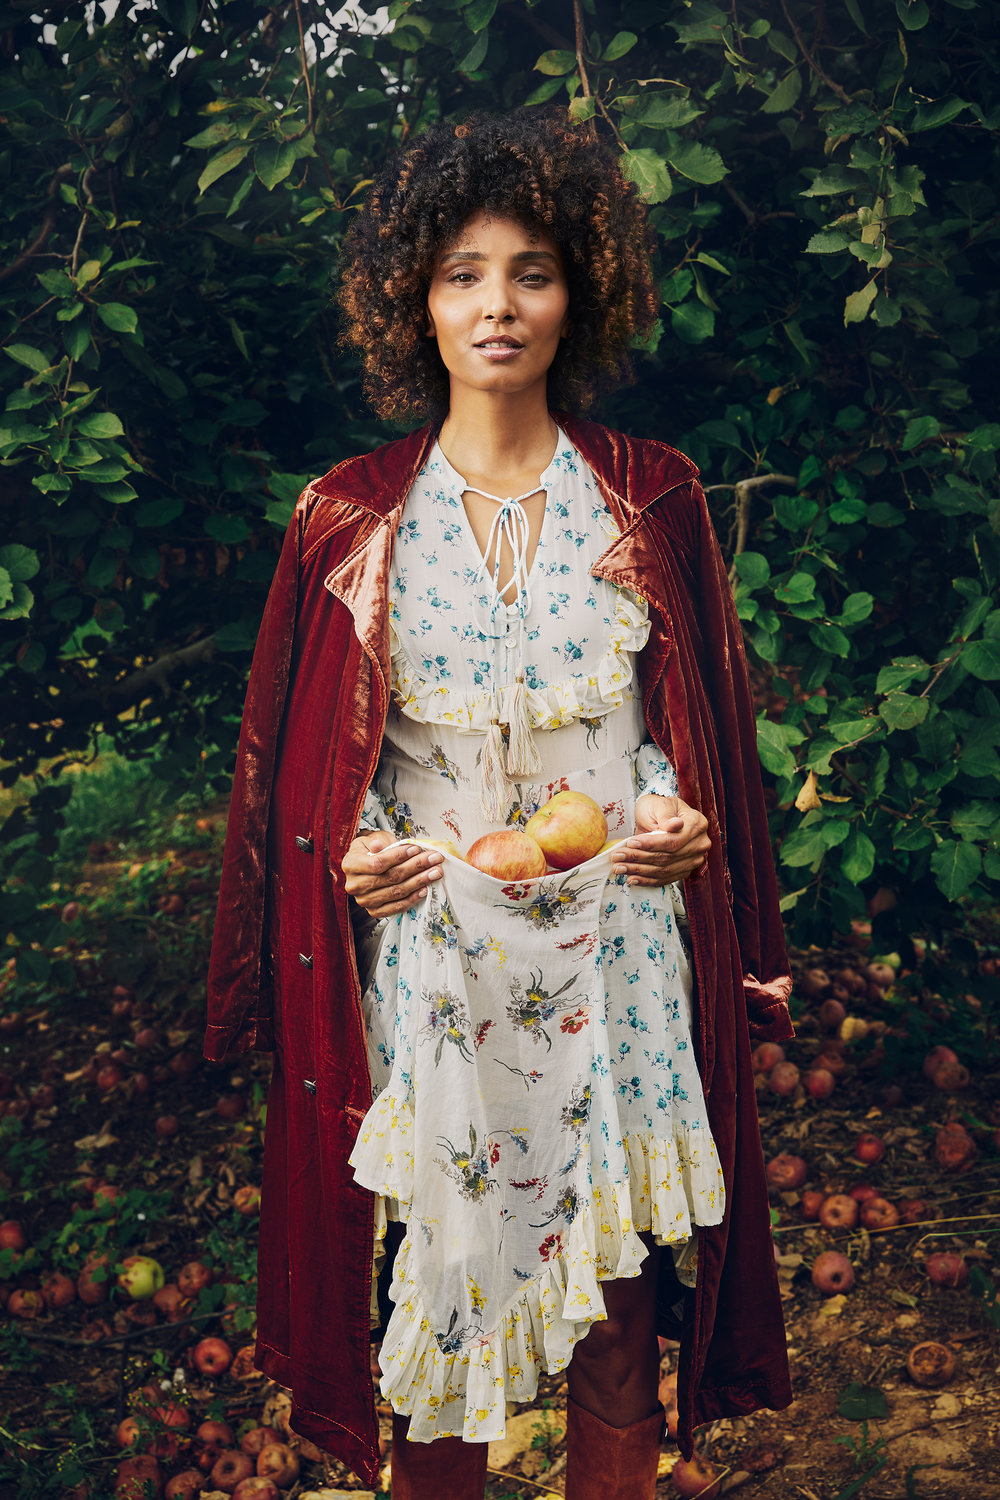 Cris wears Free People dress and coat. Boots by Marc Jacobs.